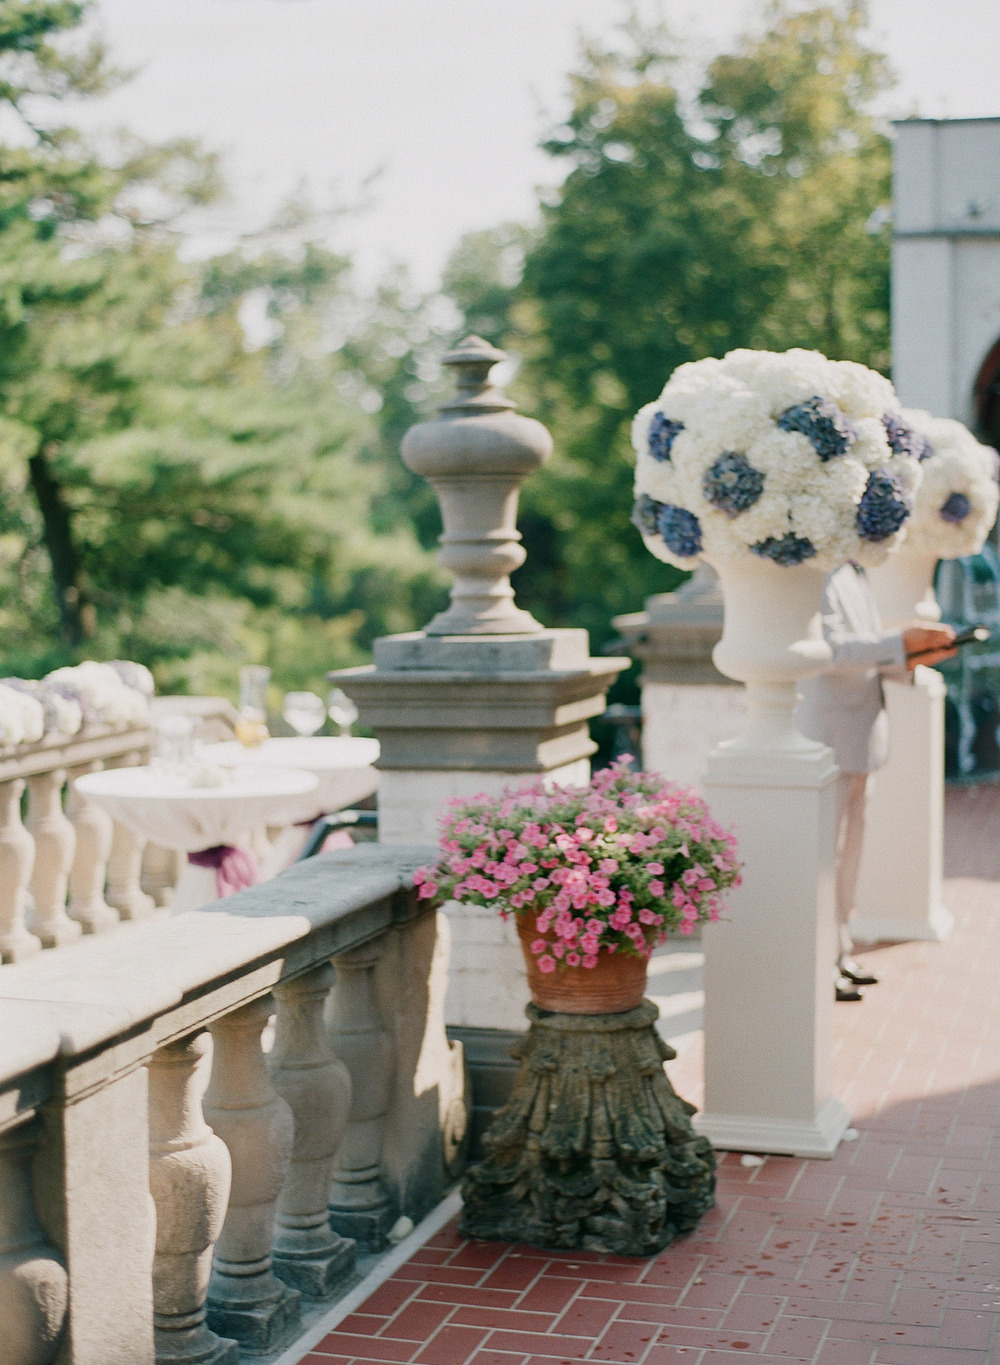 floral arrangements of vintage purple hydrangeas at the Italian Destination Wedding at the Villa Terrace - a favorite wedding venue of international wedding photographer, Lexia Frank, who is a film photographer for luxury weddings worldwide.